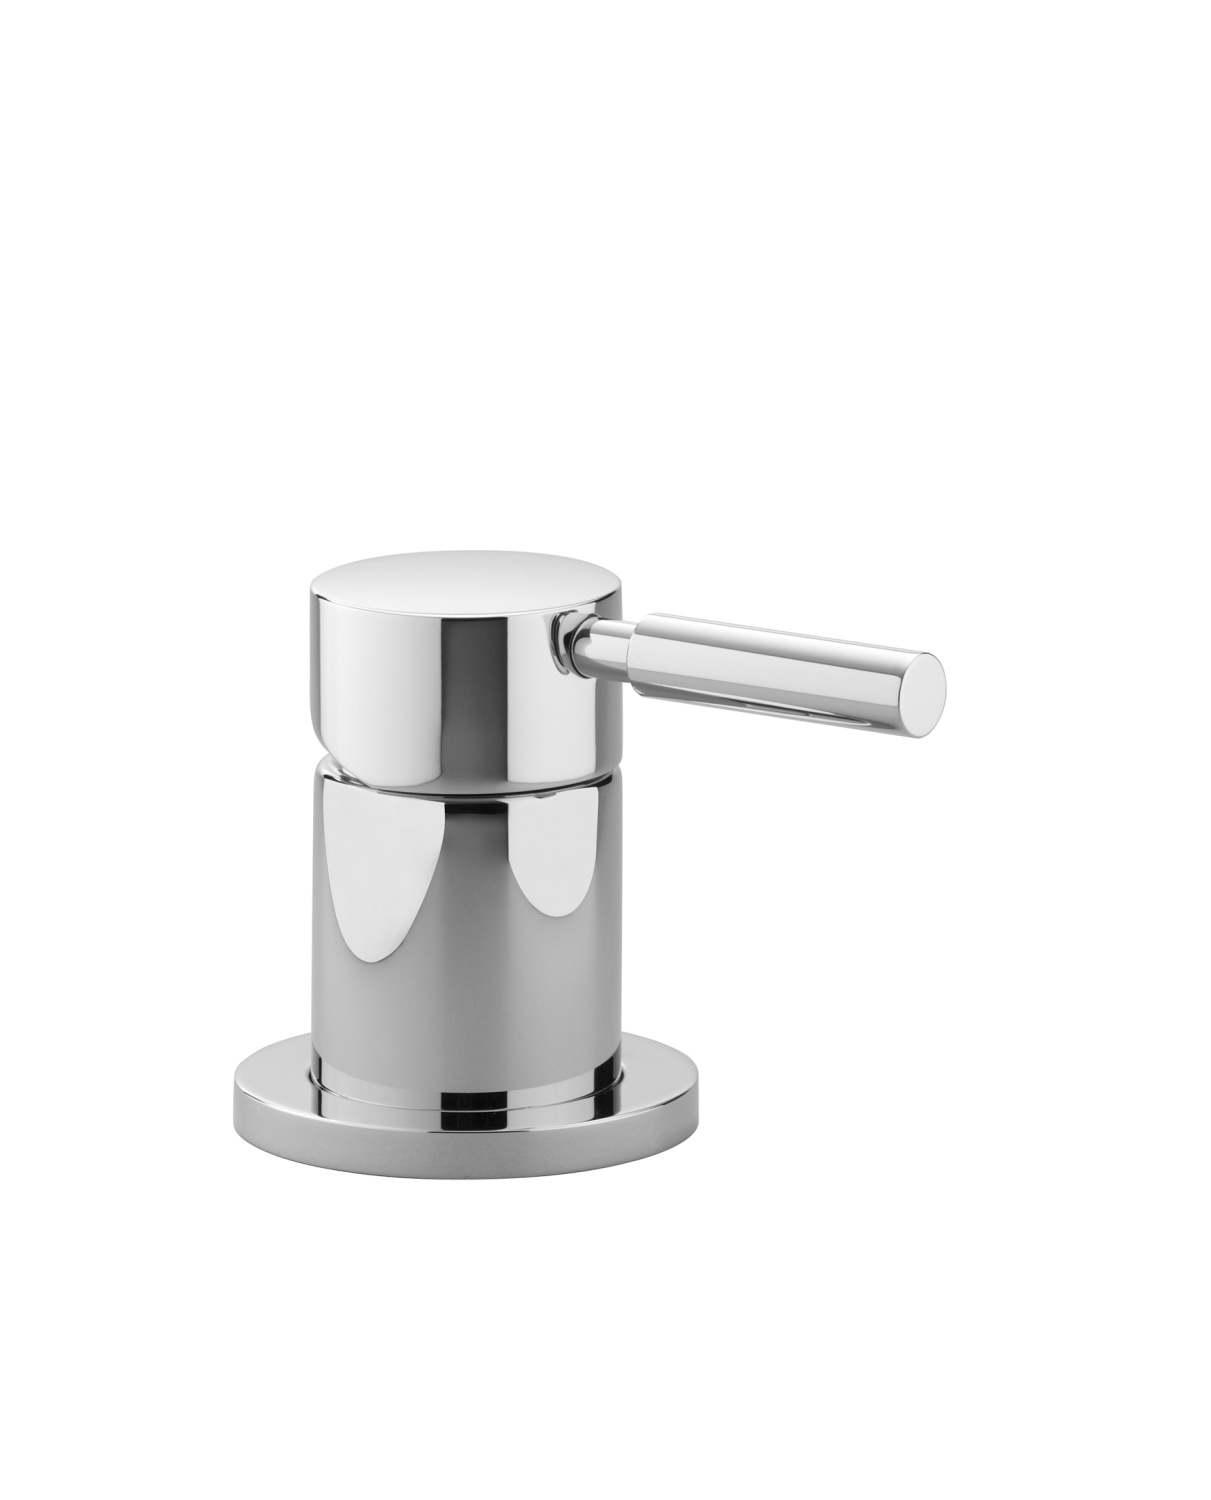 Single-lever bath mixer for bath rim or tile edge installation - platinum matt - 29 200 625-06